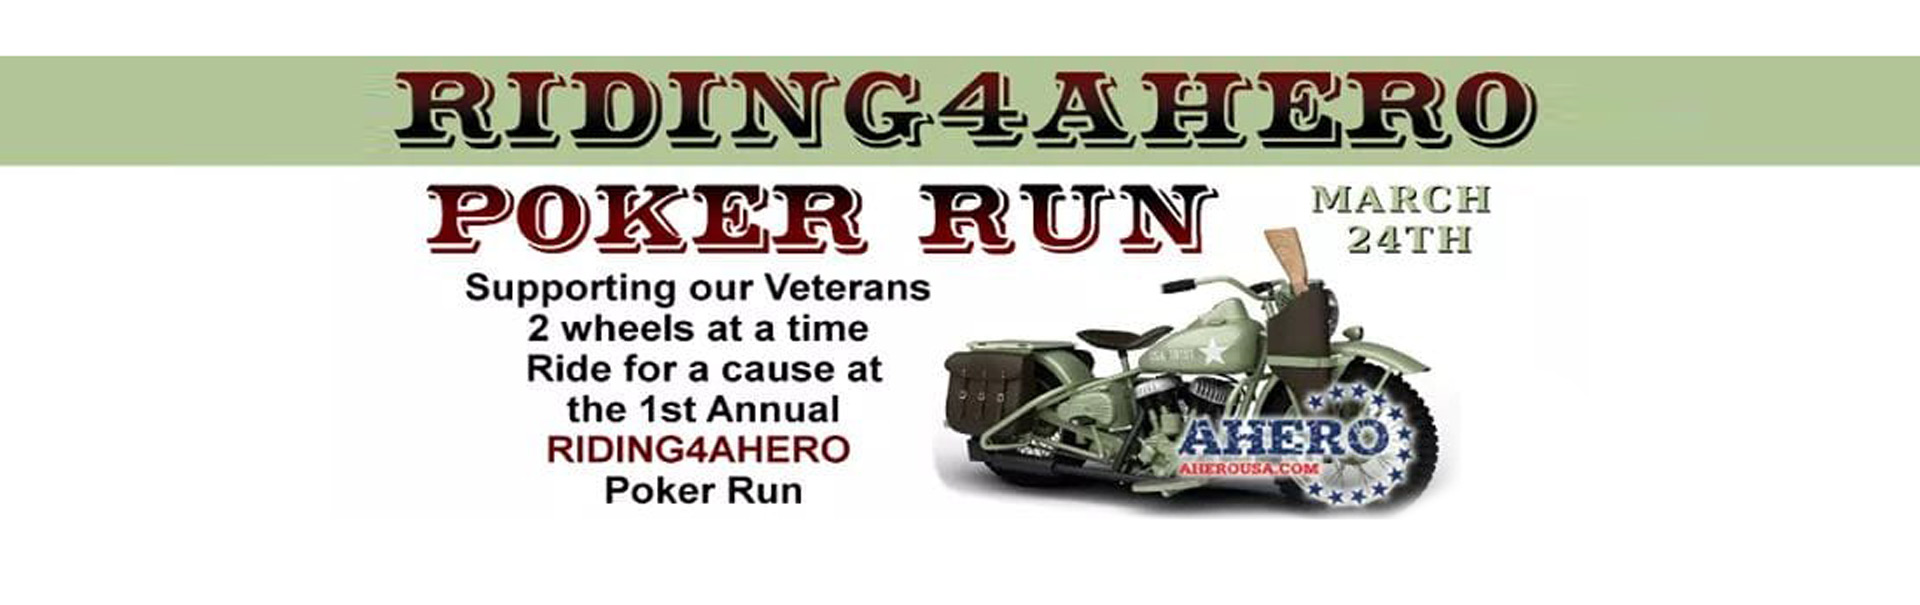 Riding4AHERO - Poker Run